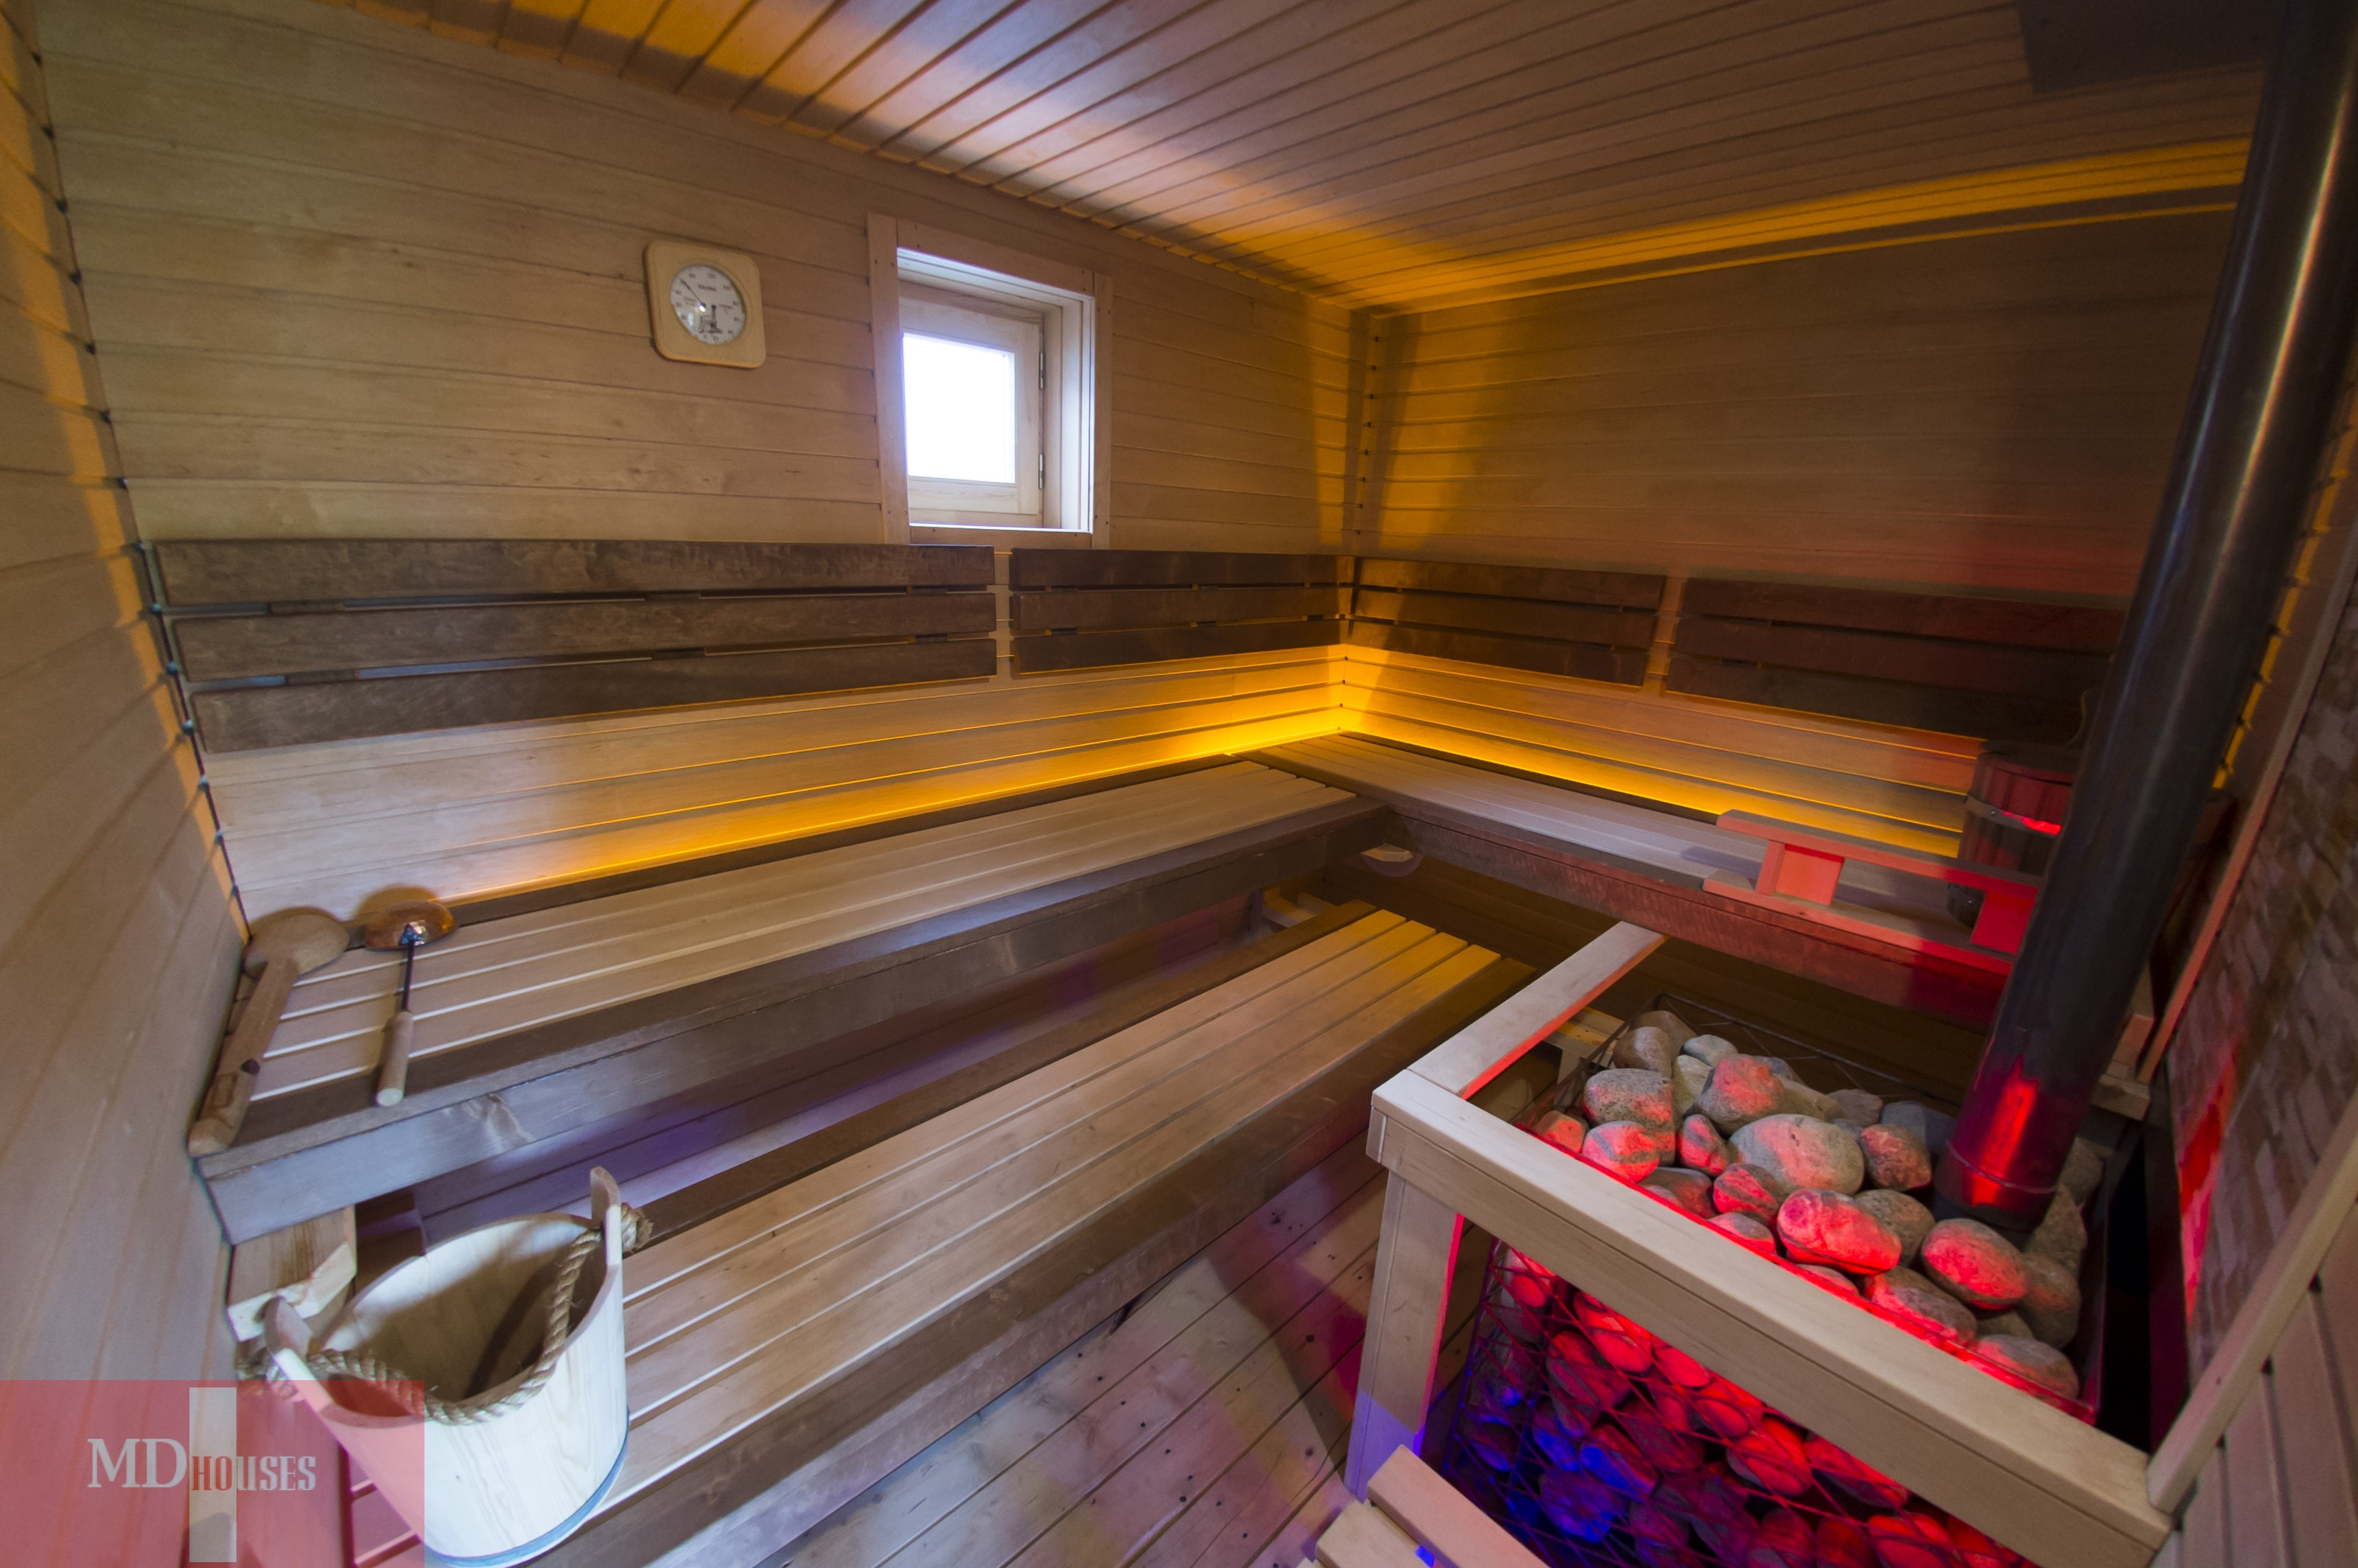 residential outside sauna for sale (5)